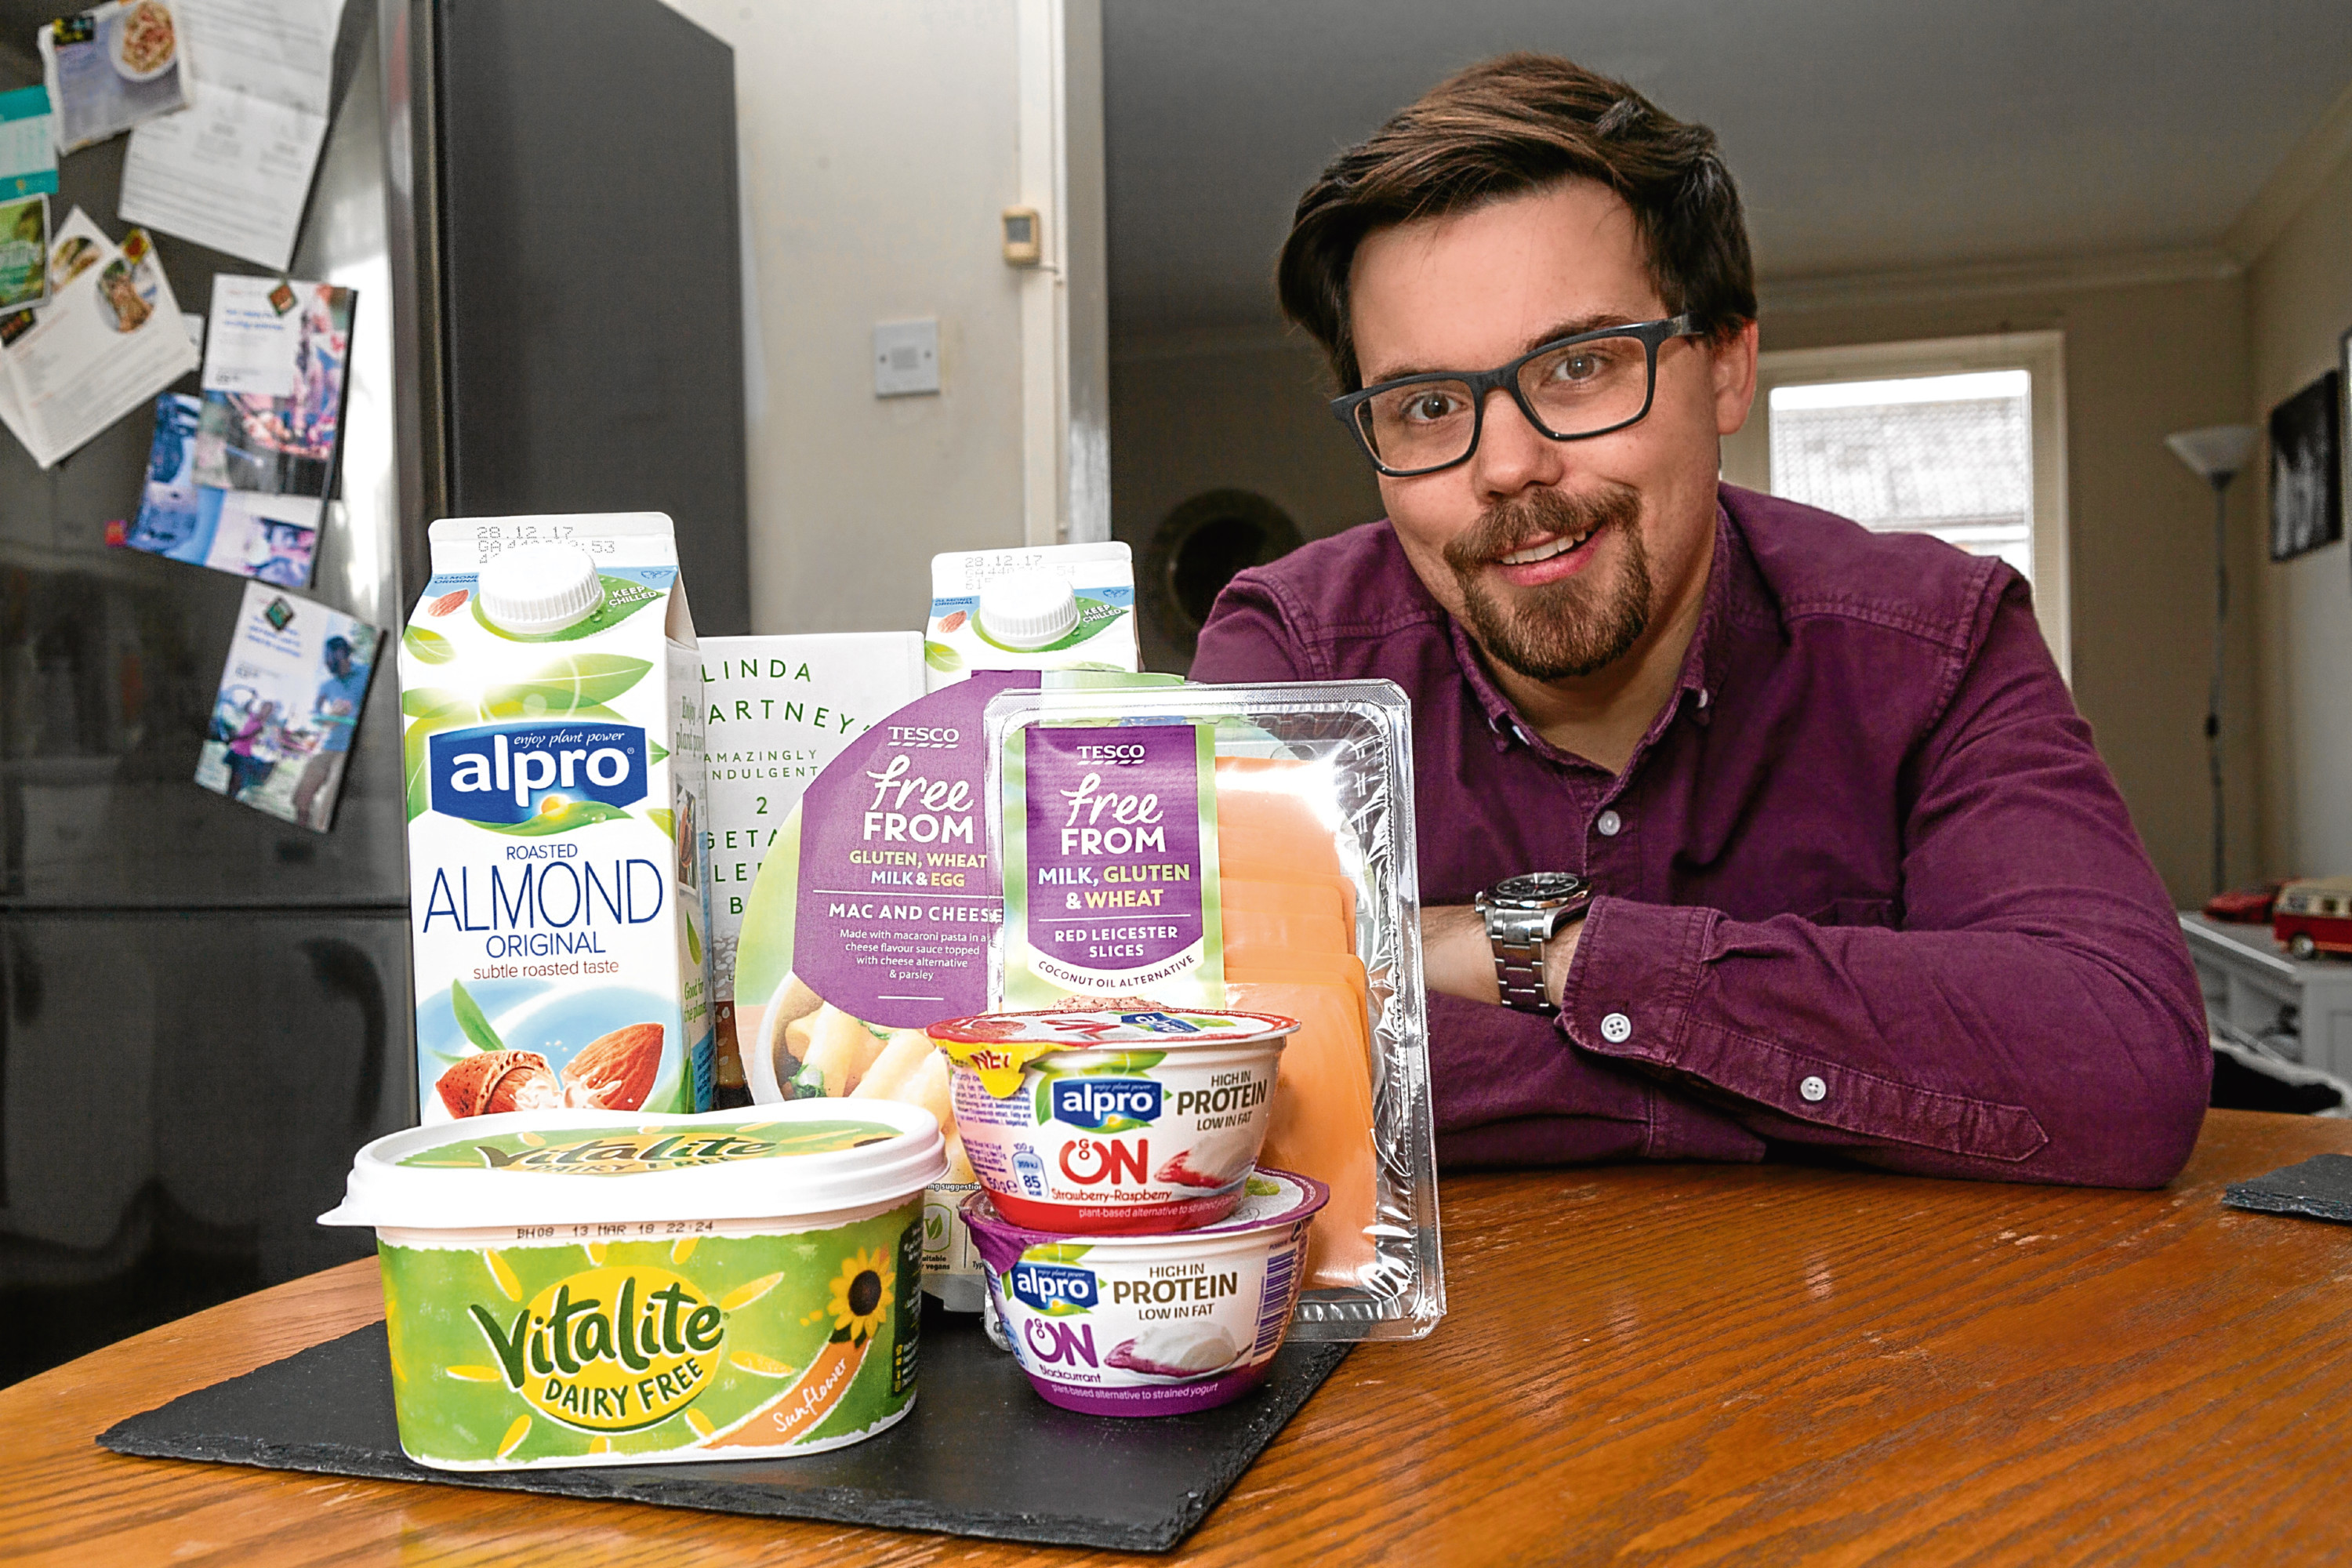 Jon with some vegan food products